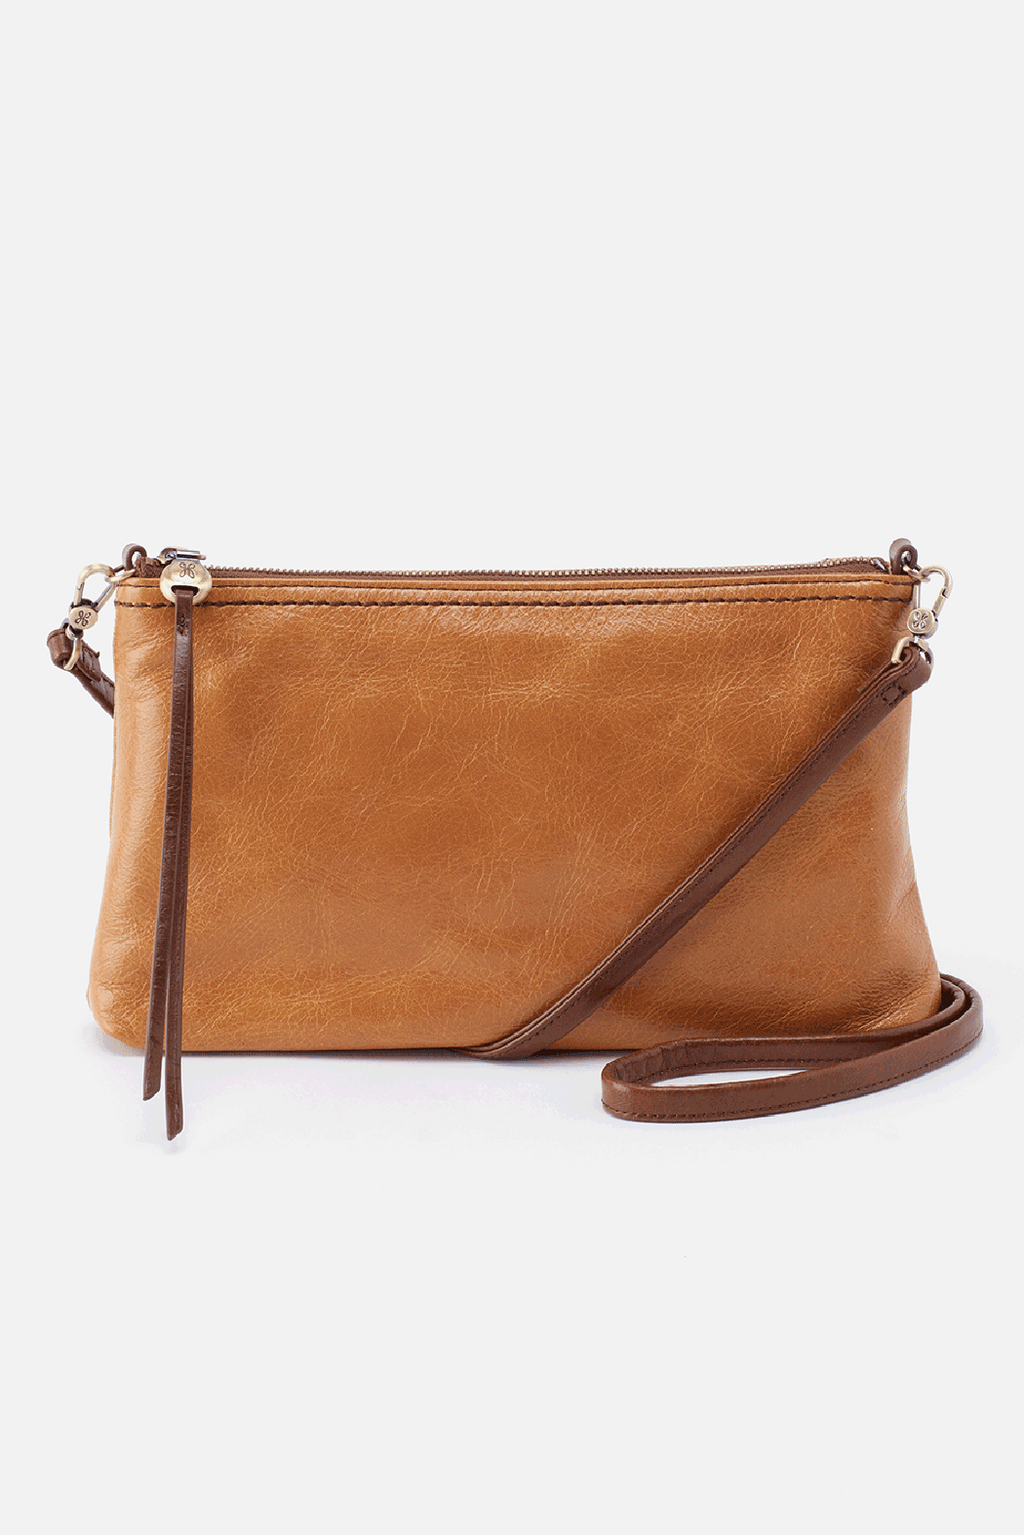 Hobo Darcy Convertible Clutch - Honey